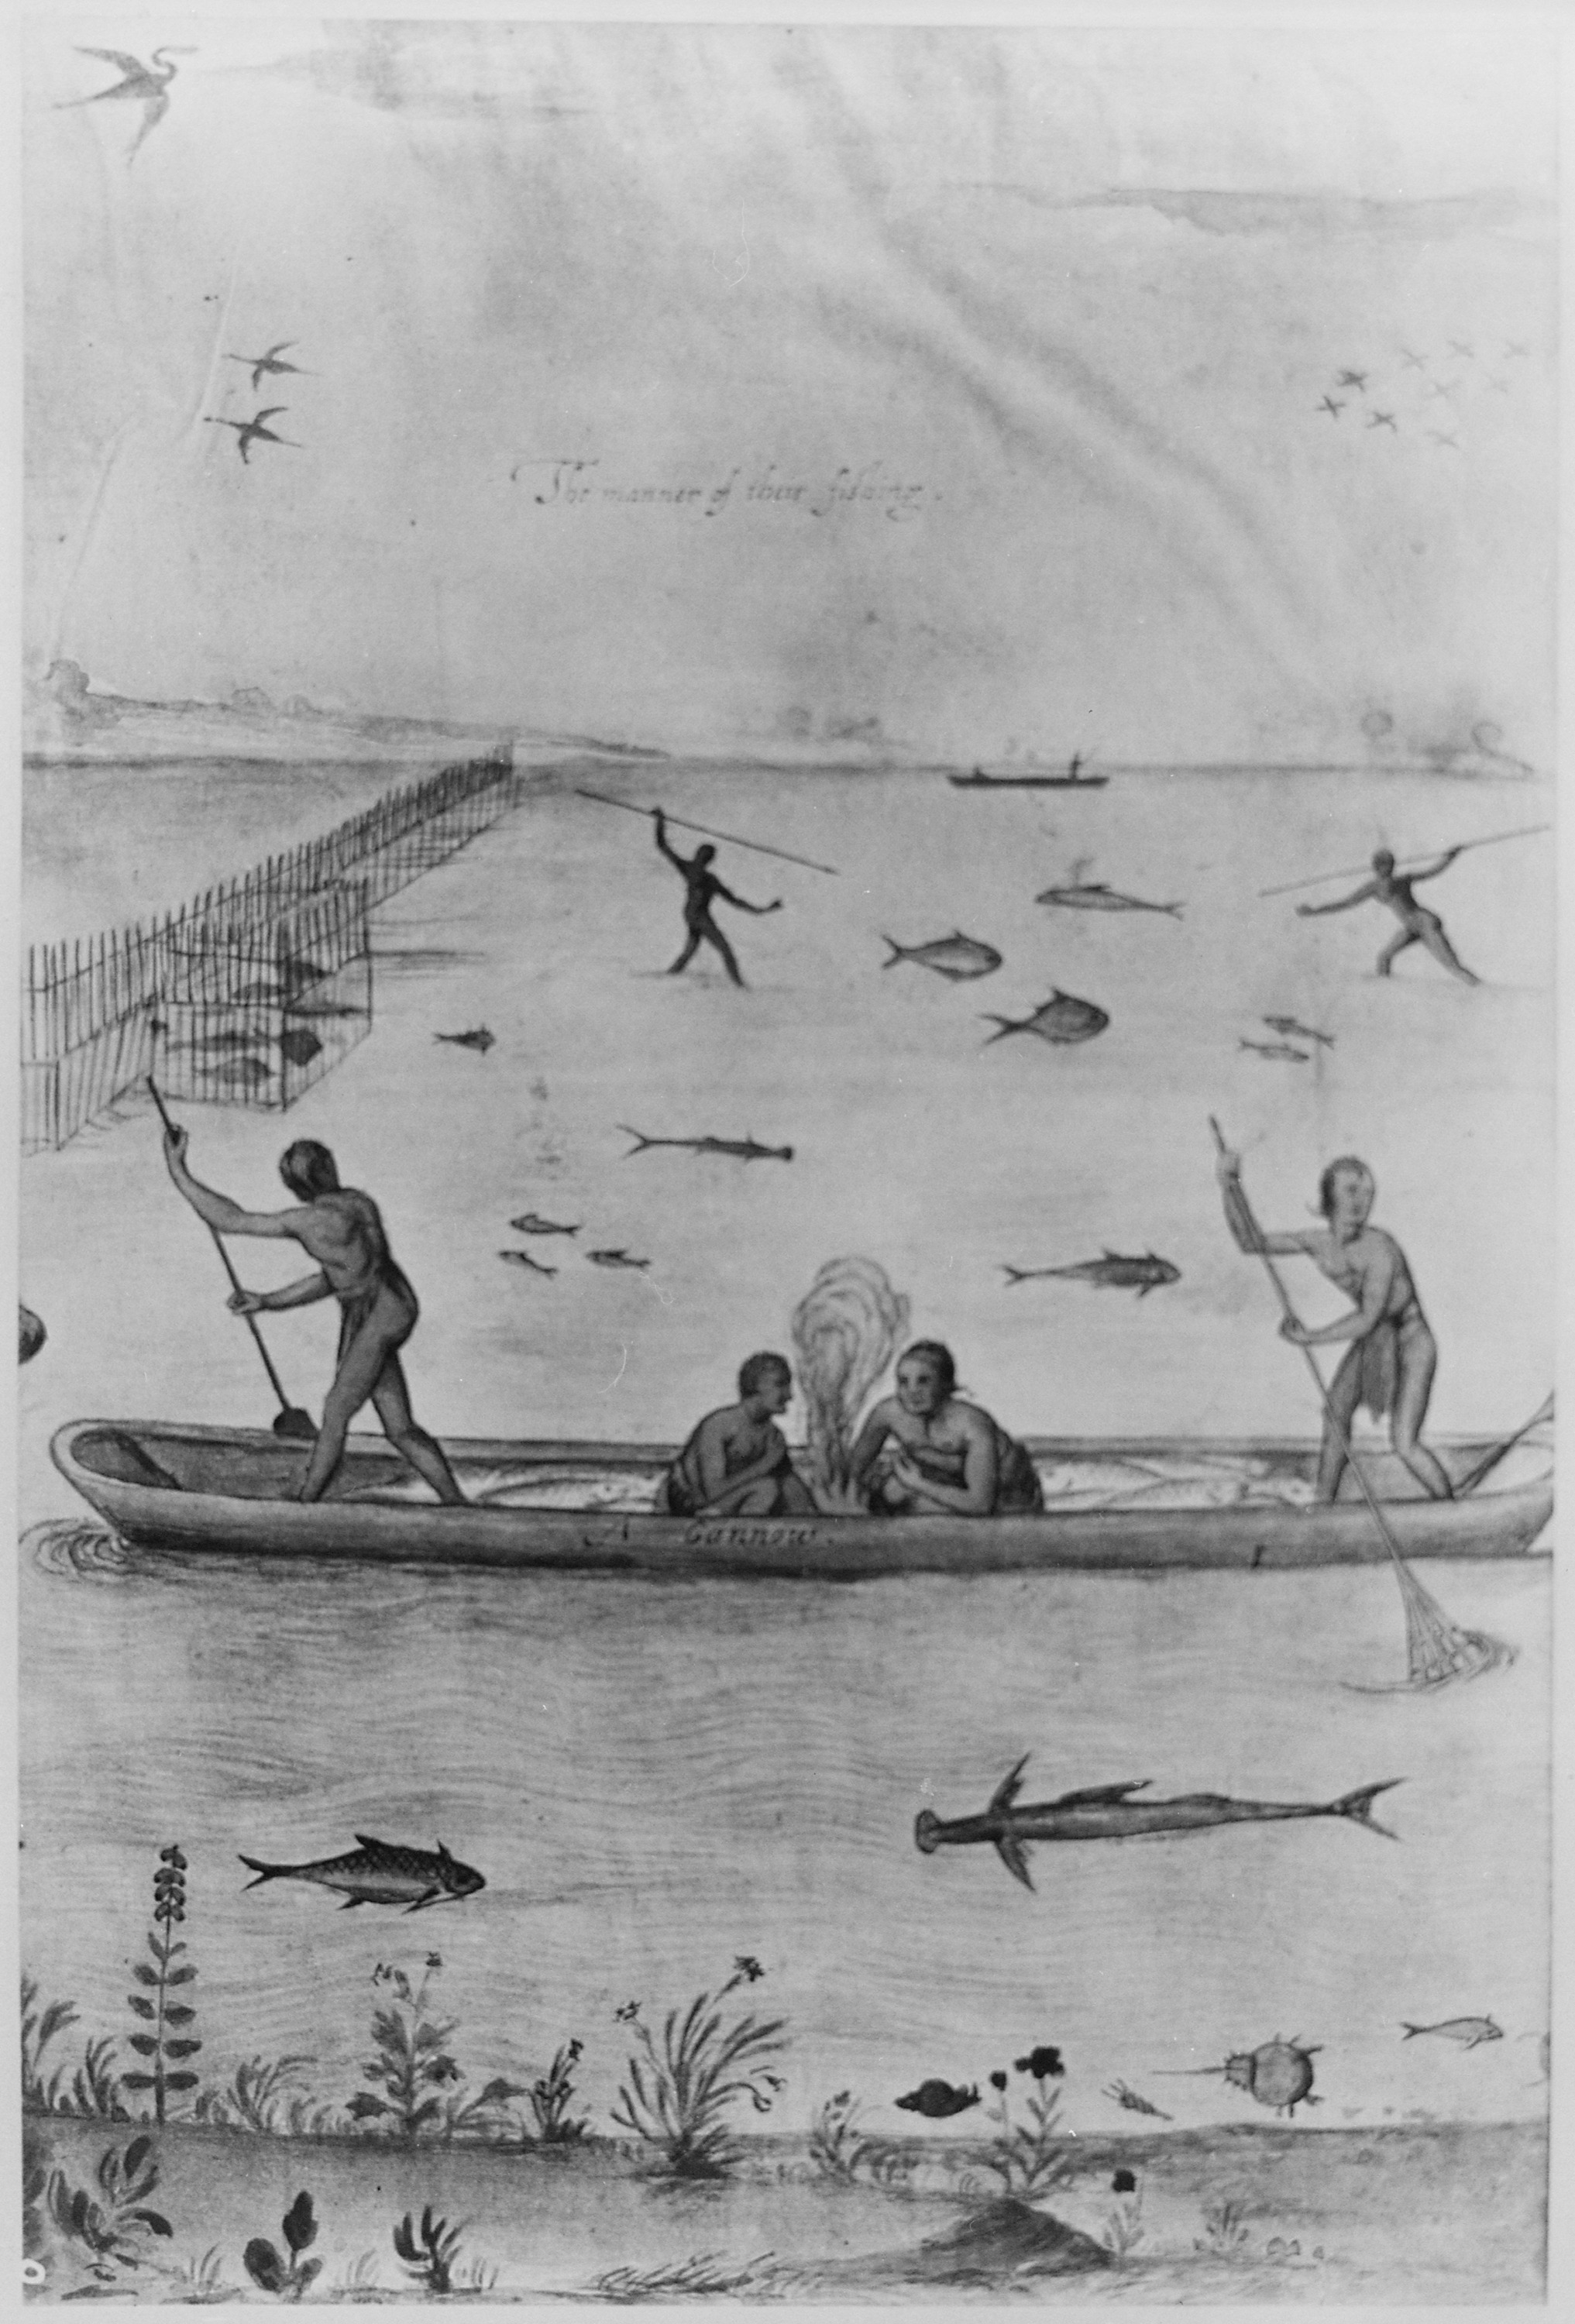 North Carolina Fish Size Regulations http://commons.wikimedia.org/wiki/File:Indians_in_North_Carolina_fishing_with_traps,_spears,_and_nets,_1885_-_NARA_-_535743.jpg